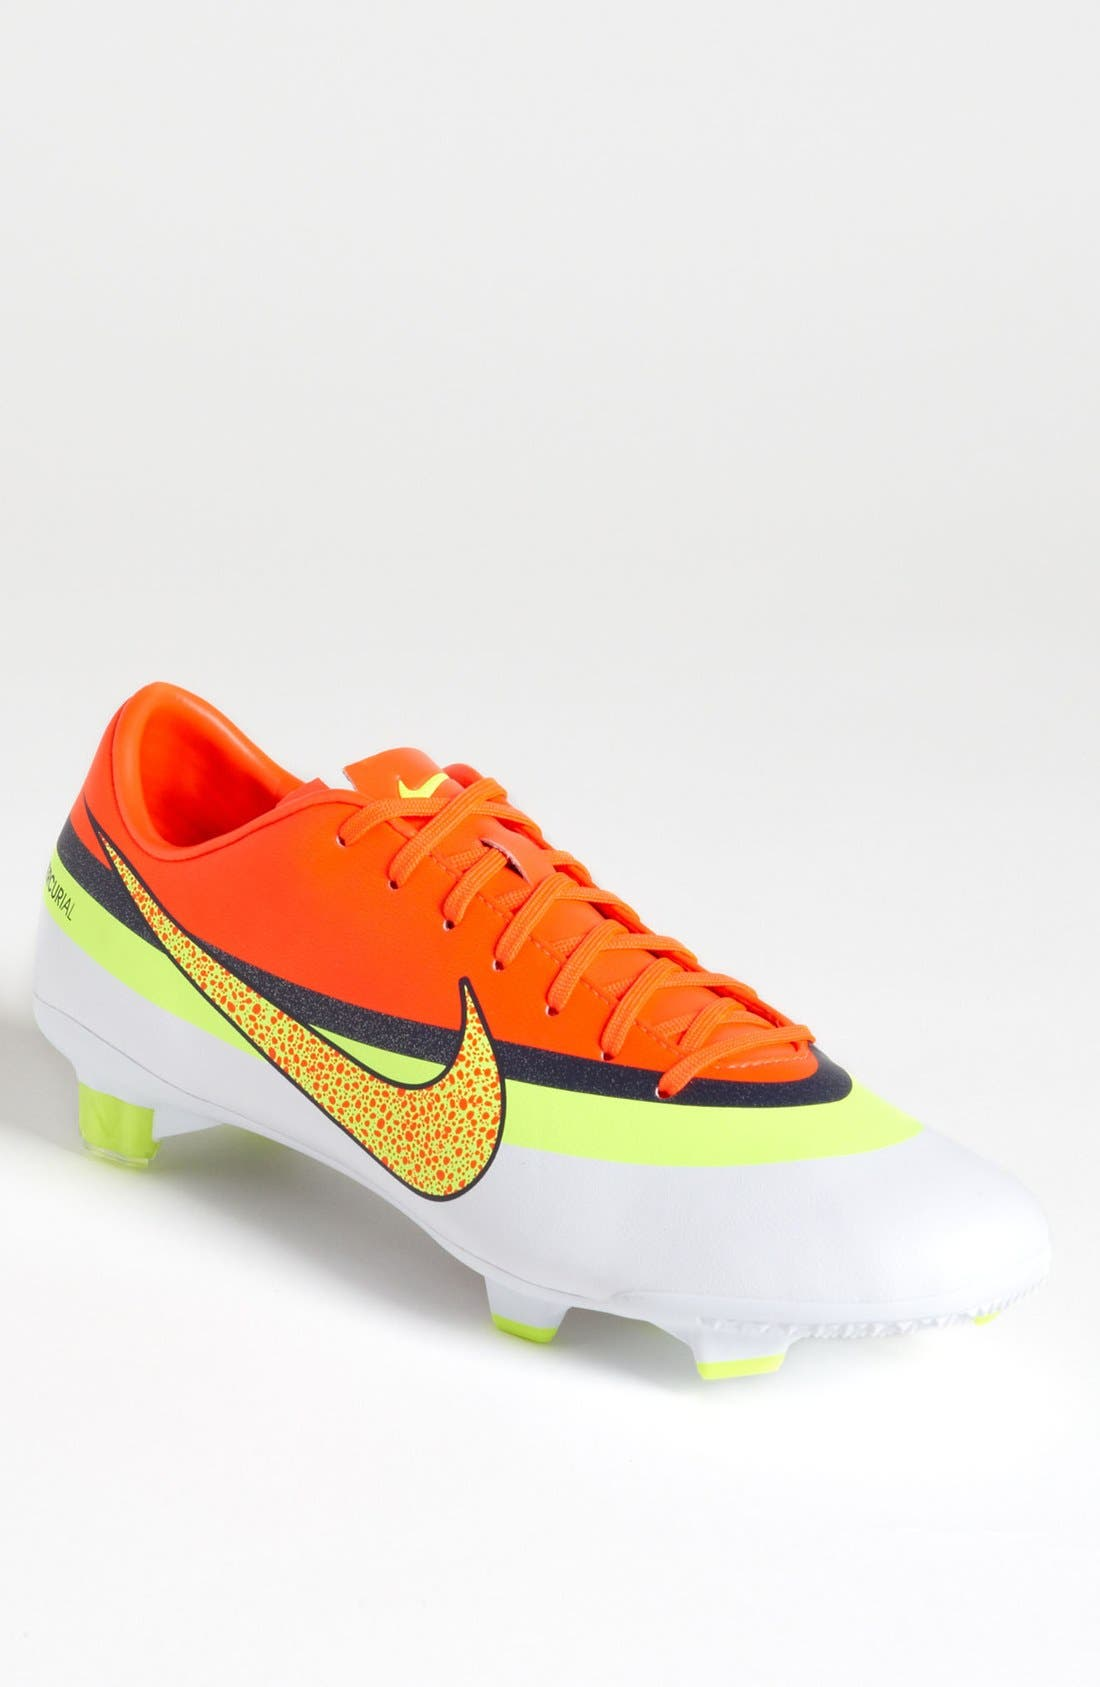 'Mercurial Veloce CR FG' Soccer Cleat,                             Main thumbnail 1, color,                             174